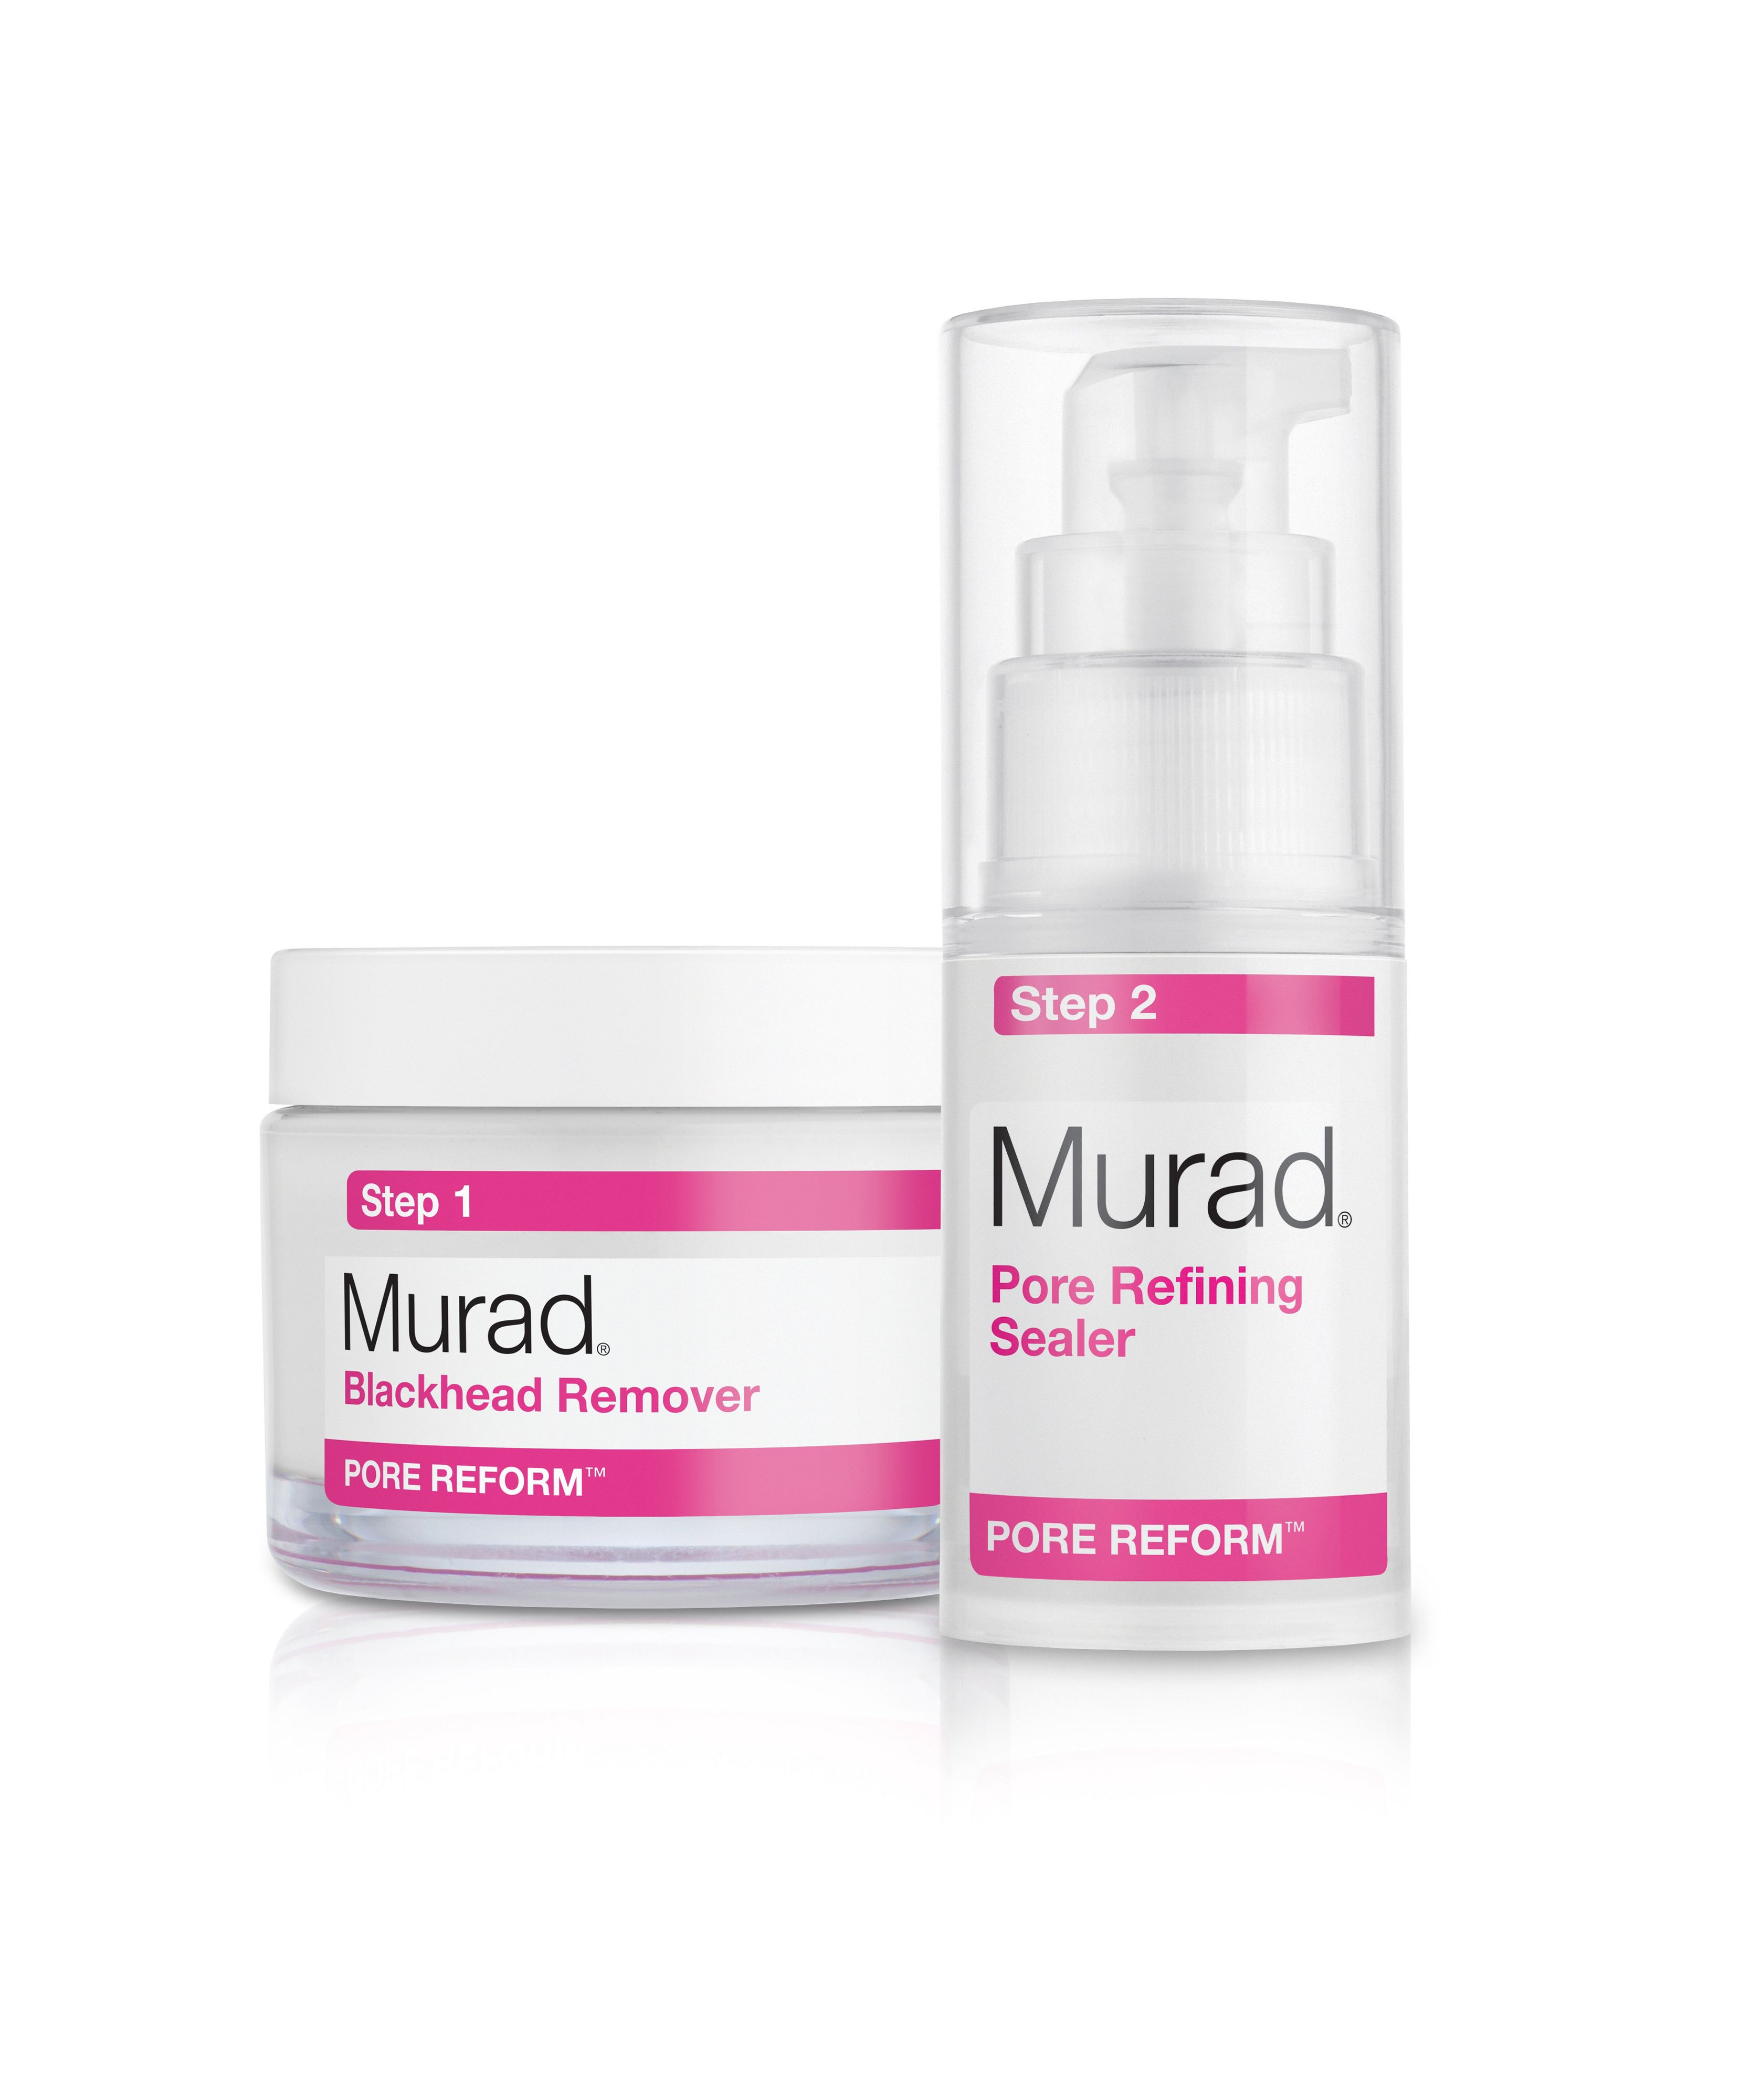 Blackhead & Pore Clearing Duo